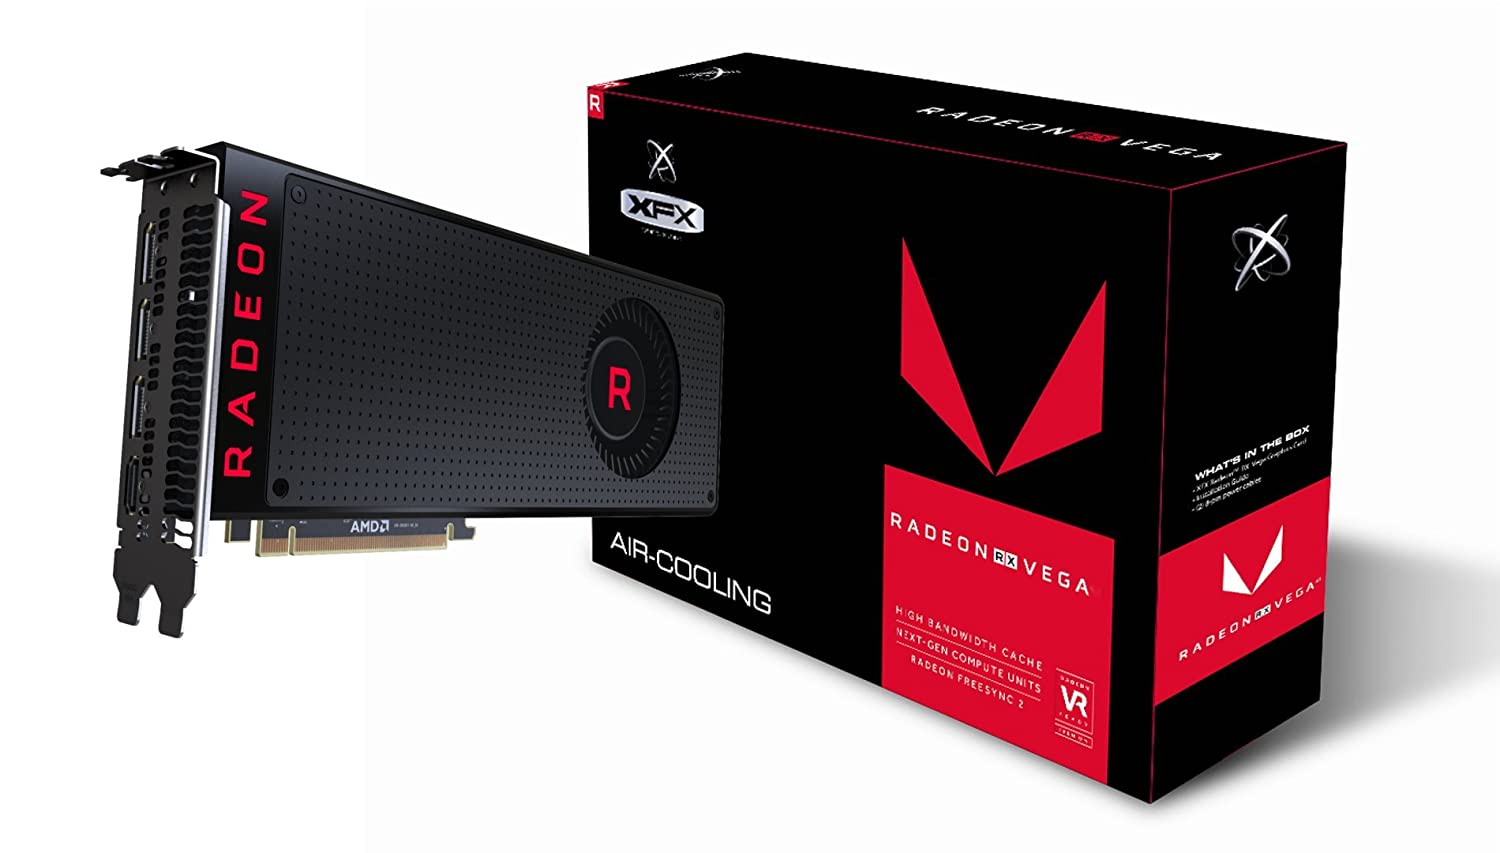 AMD Radeon RX Vega 56 8GB Black Friday Deal